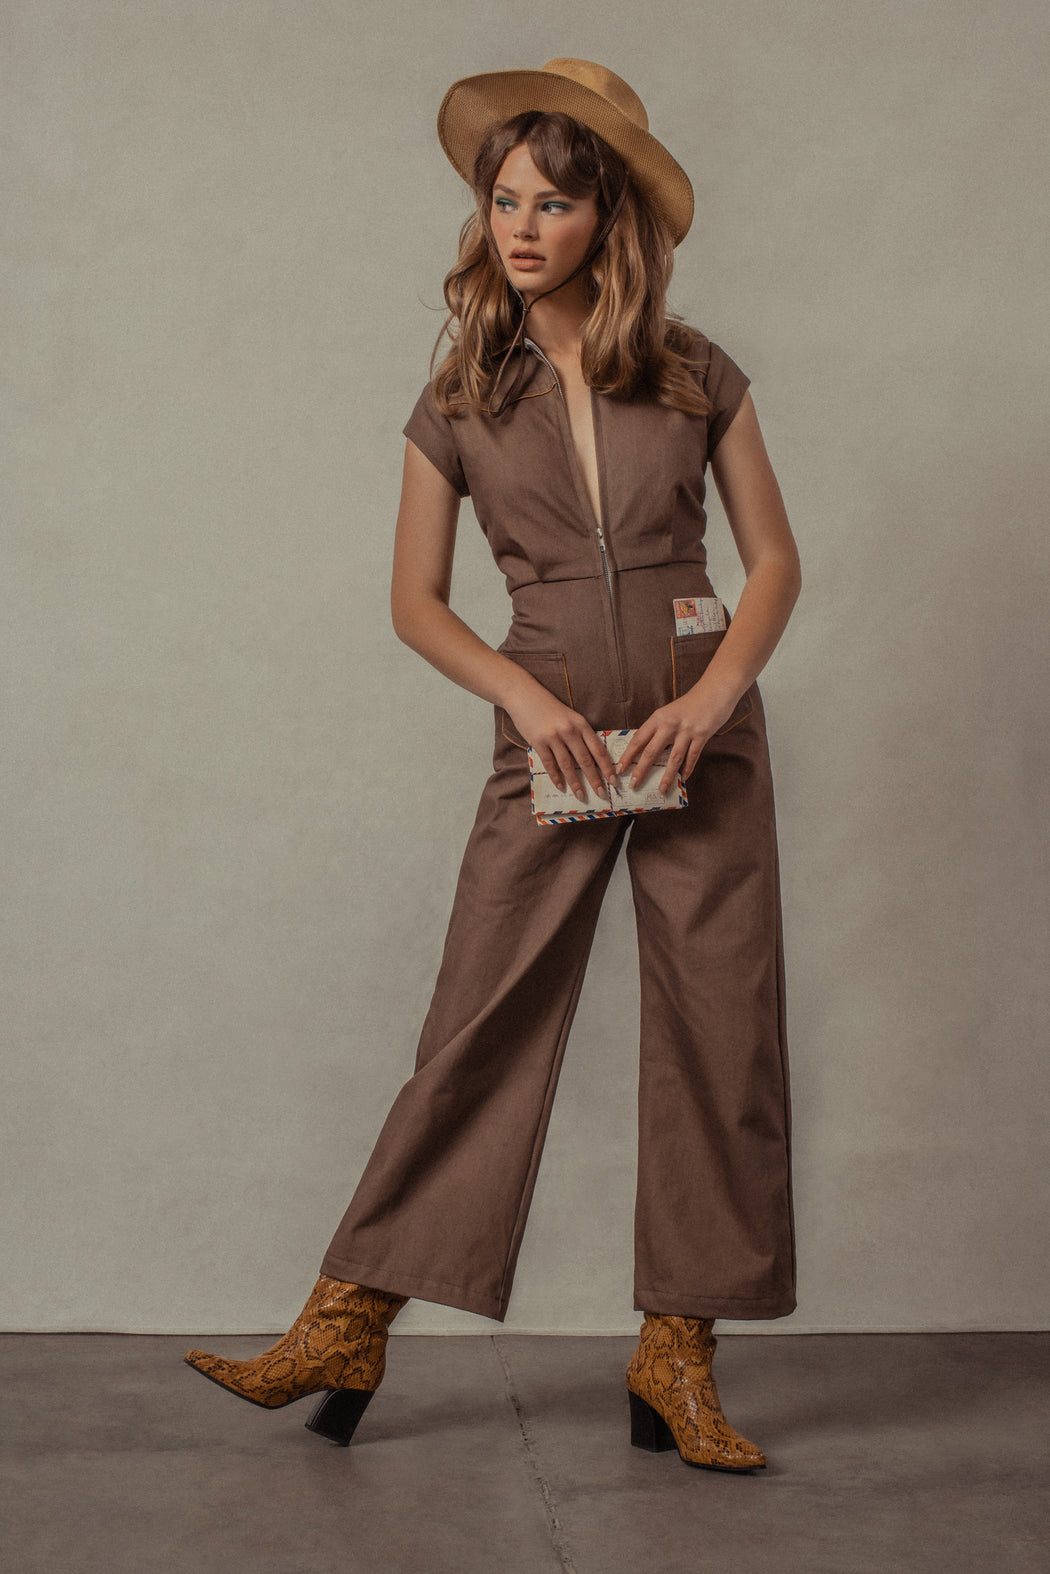 LUCKY STARS JUMPSUIT IN DUST